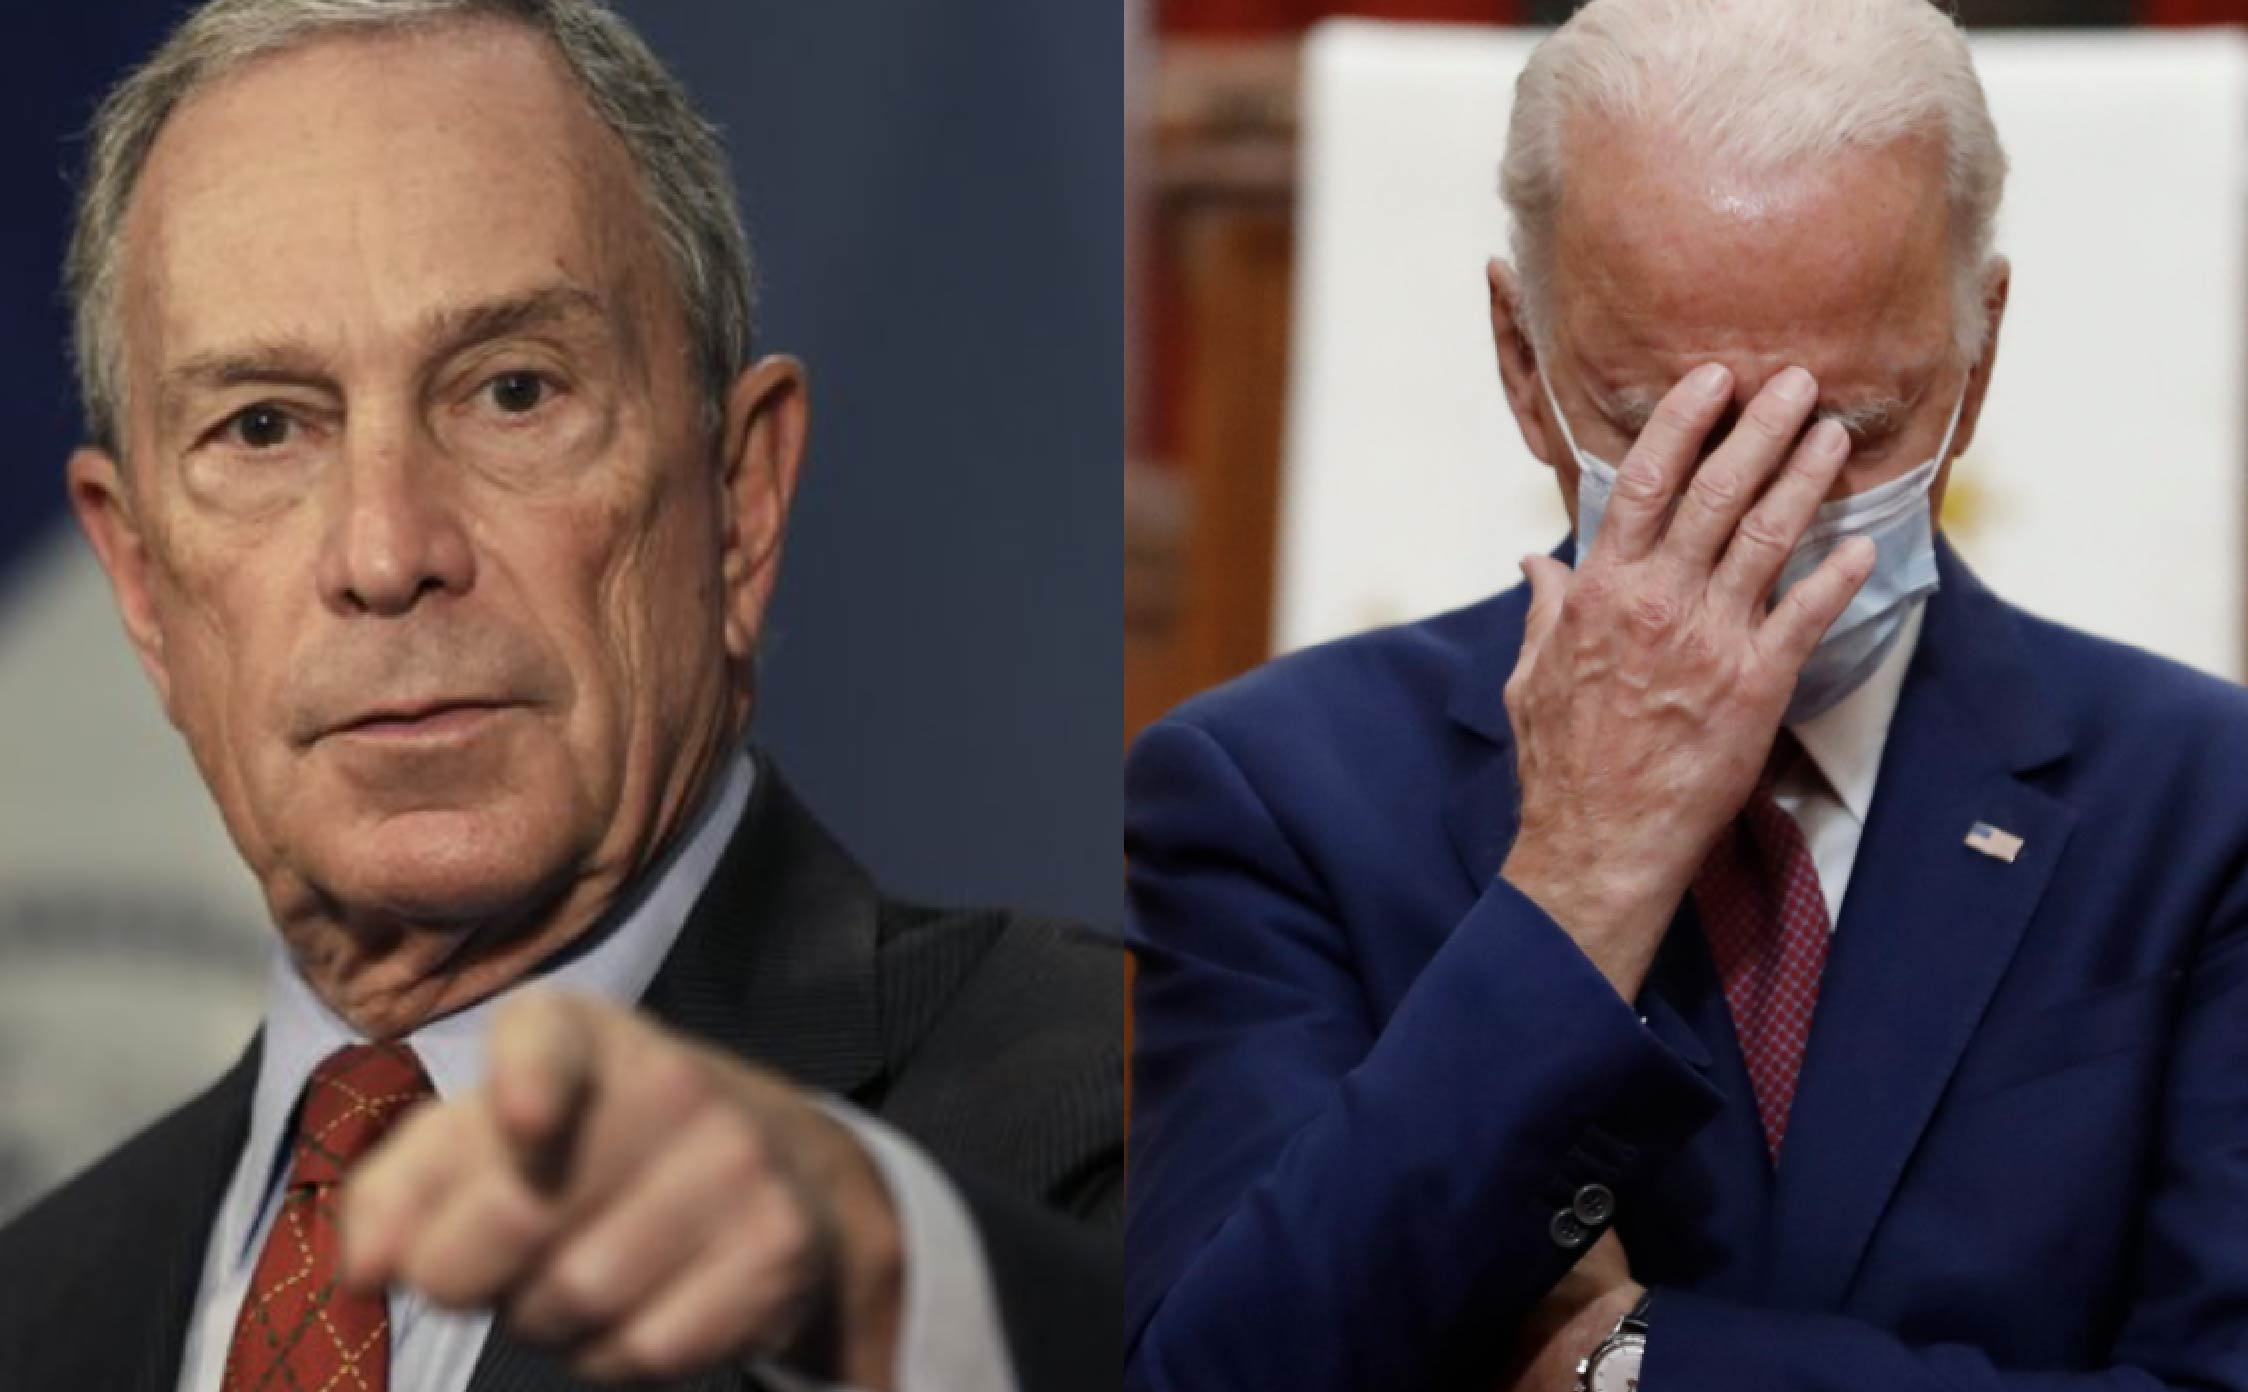 [VIDEO] Uh Oh, Now Mike Bloomberg is Going After Joe Biden